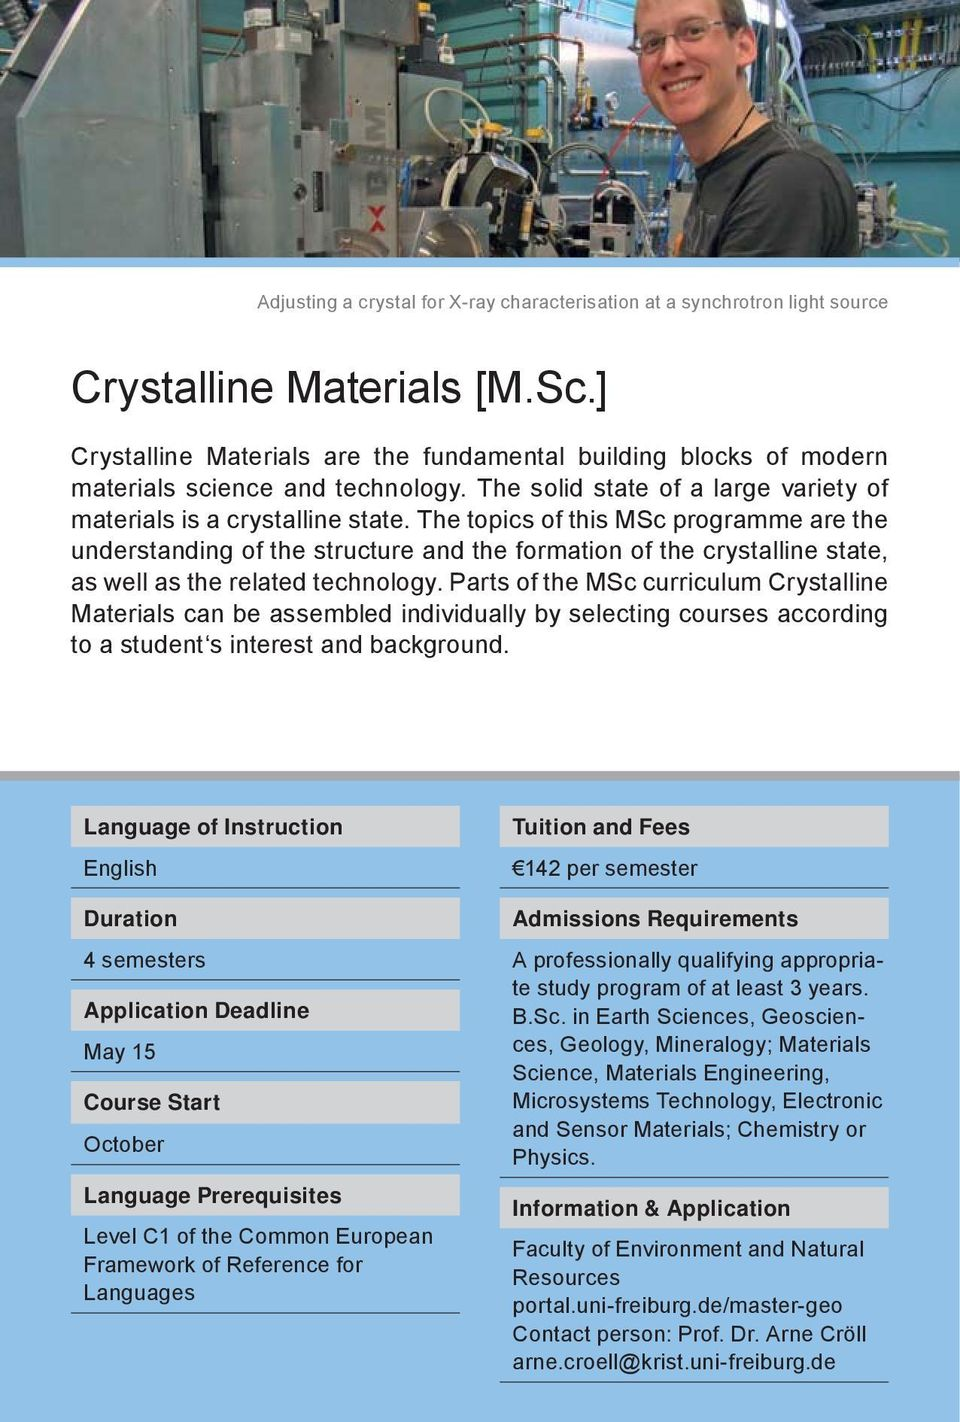 The topics of this MSc programme are the understanding of the structure and the formation of the crystalline state, as well as the related technology.